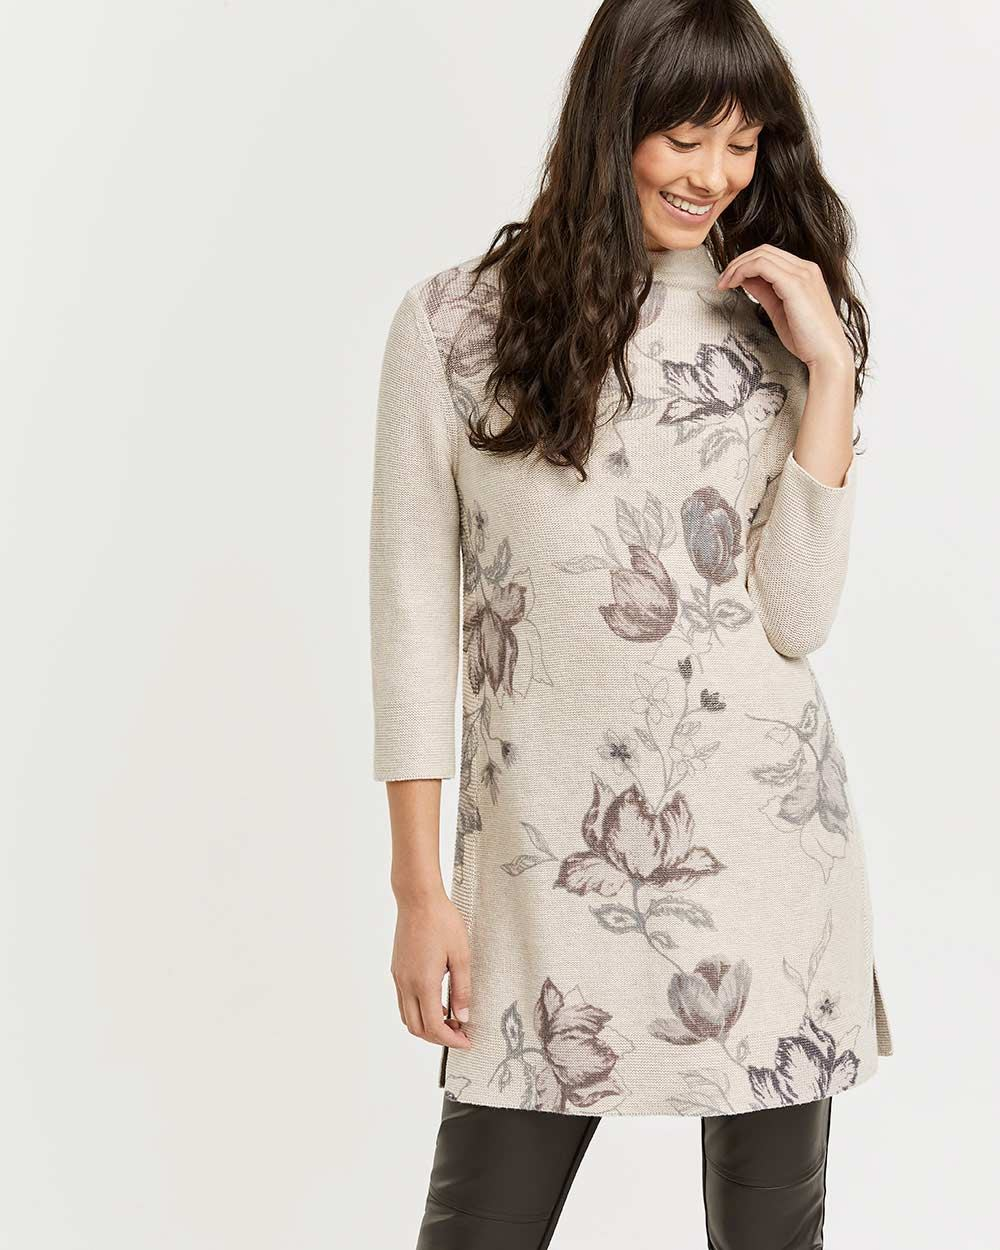 3/4 Sleeve Mock Neck Tunic with Floral Print